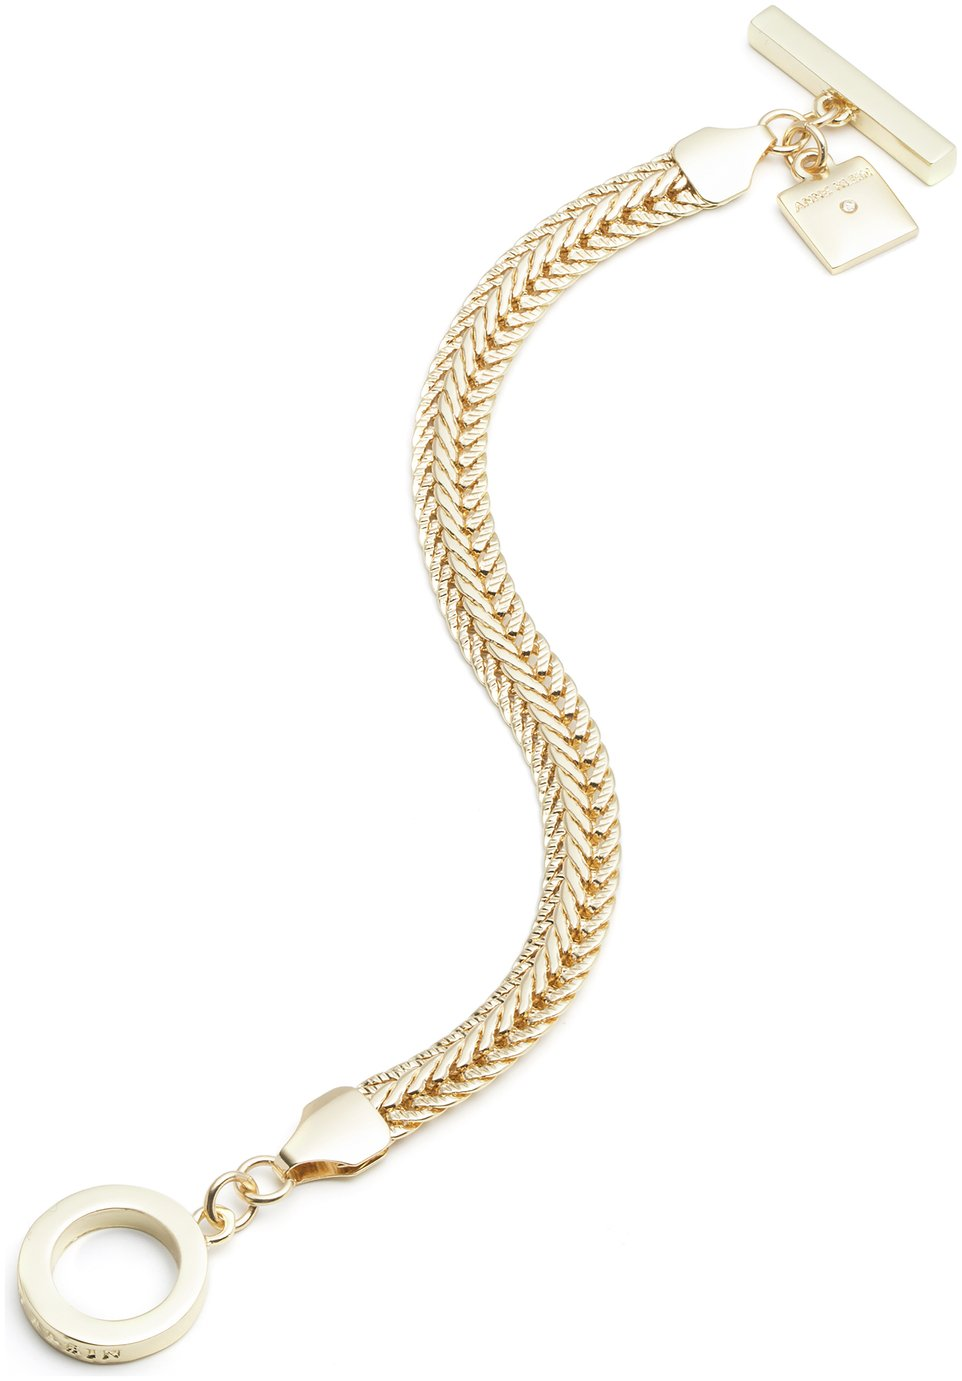 Anne Klein Gold Coloured Flat Chain Bracelet from Anne Klein